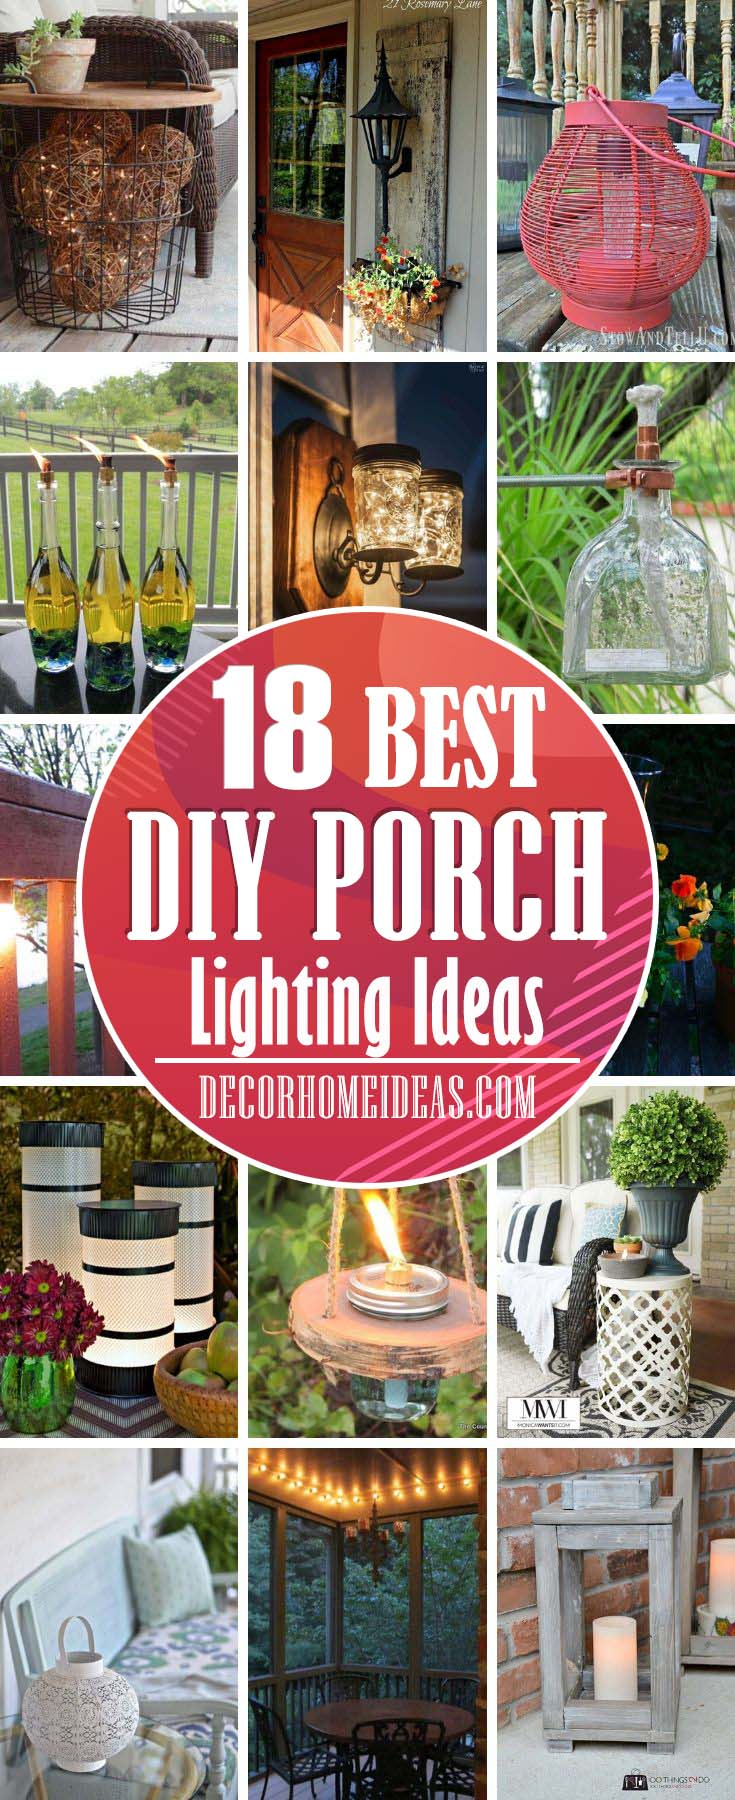 Porch Lighting Ideas. Take a look at these awesome DIY porch lighting ideas to make your porch more inviting and welcoming at night. #diy #porch #lighting #decorhomeideas